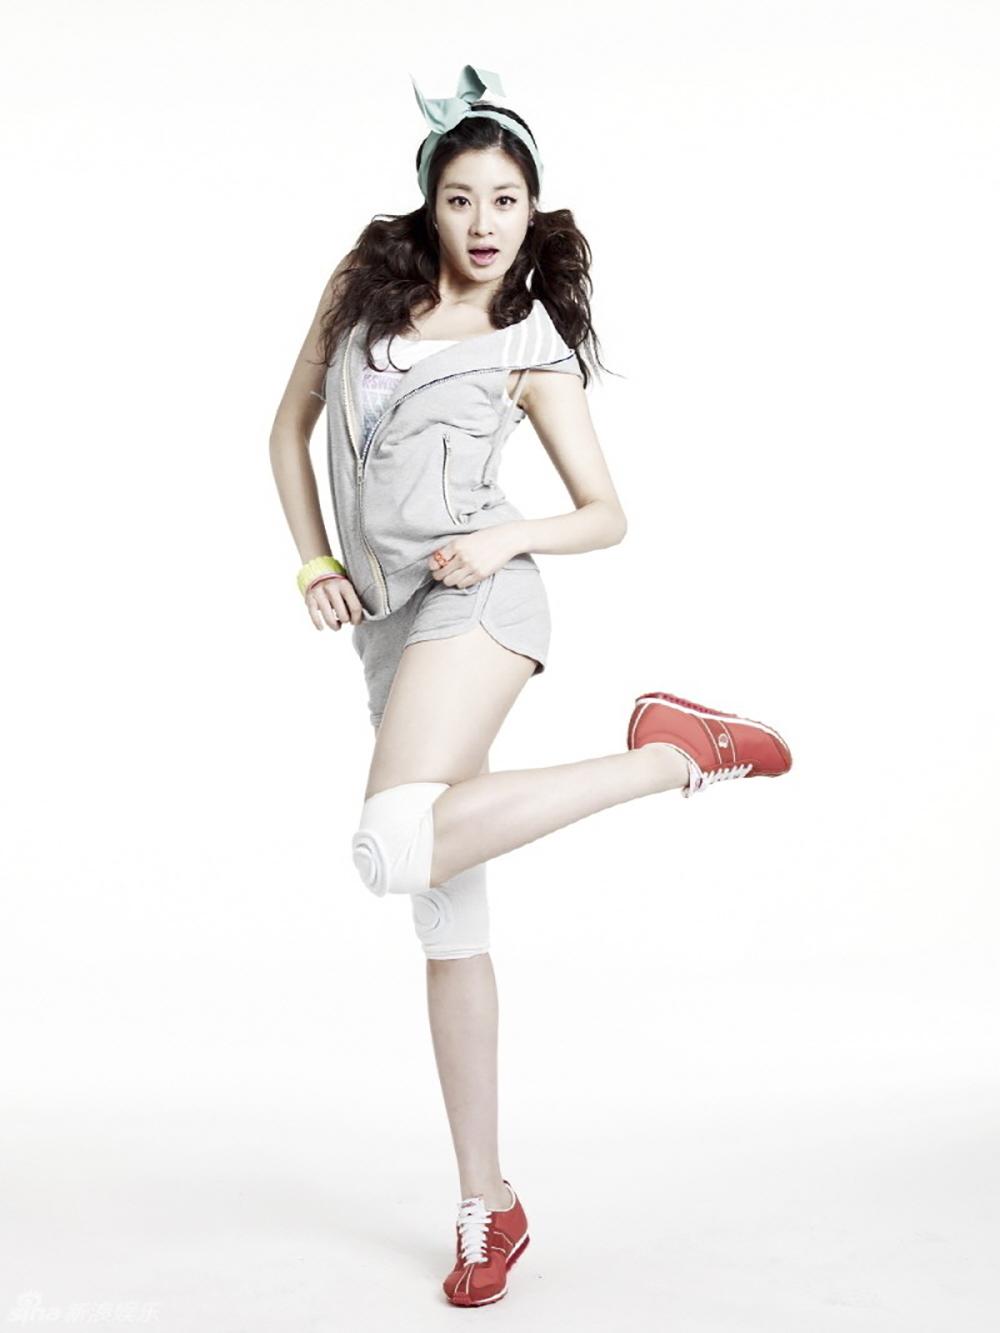 kang-sora-shows-off-her-preppy-look-for-k-swiss